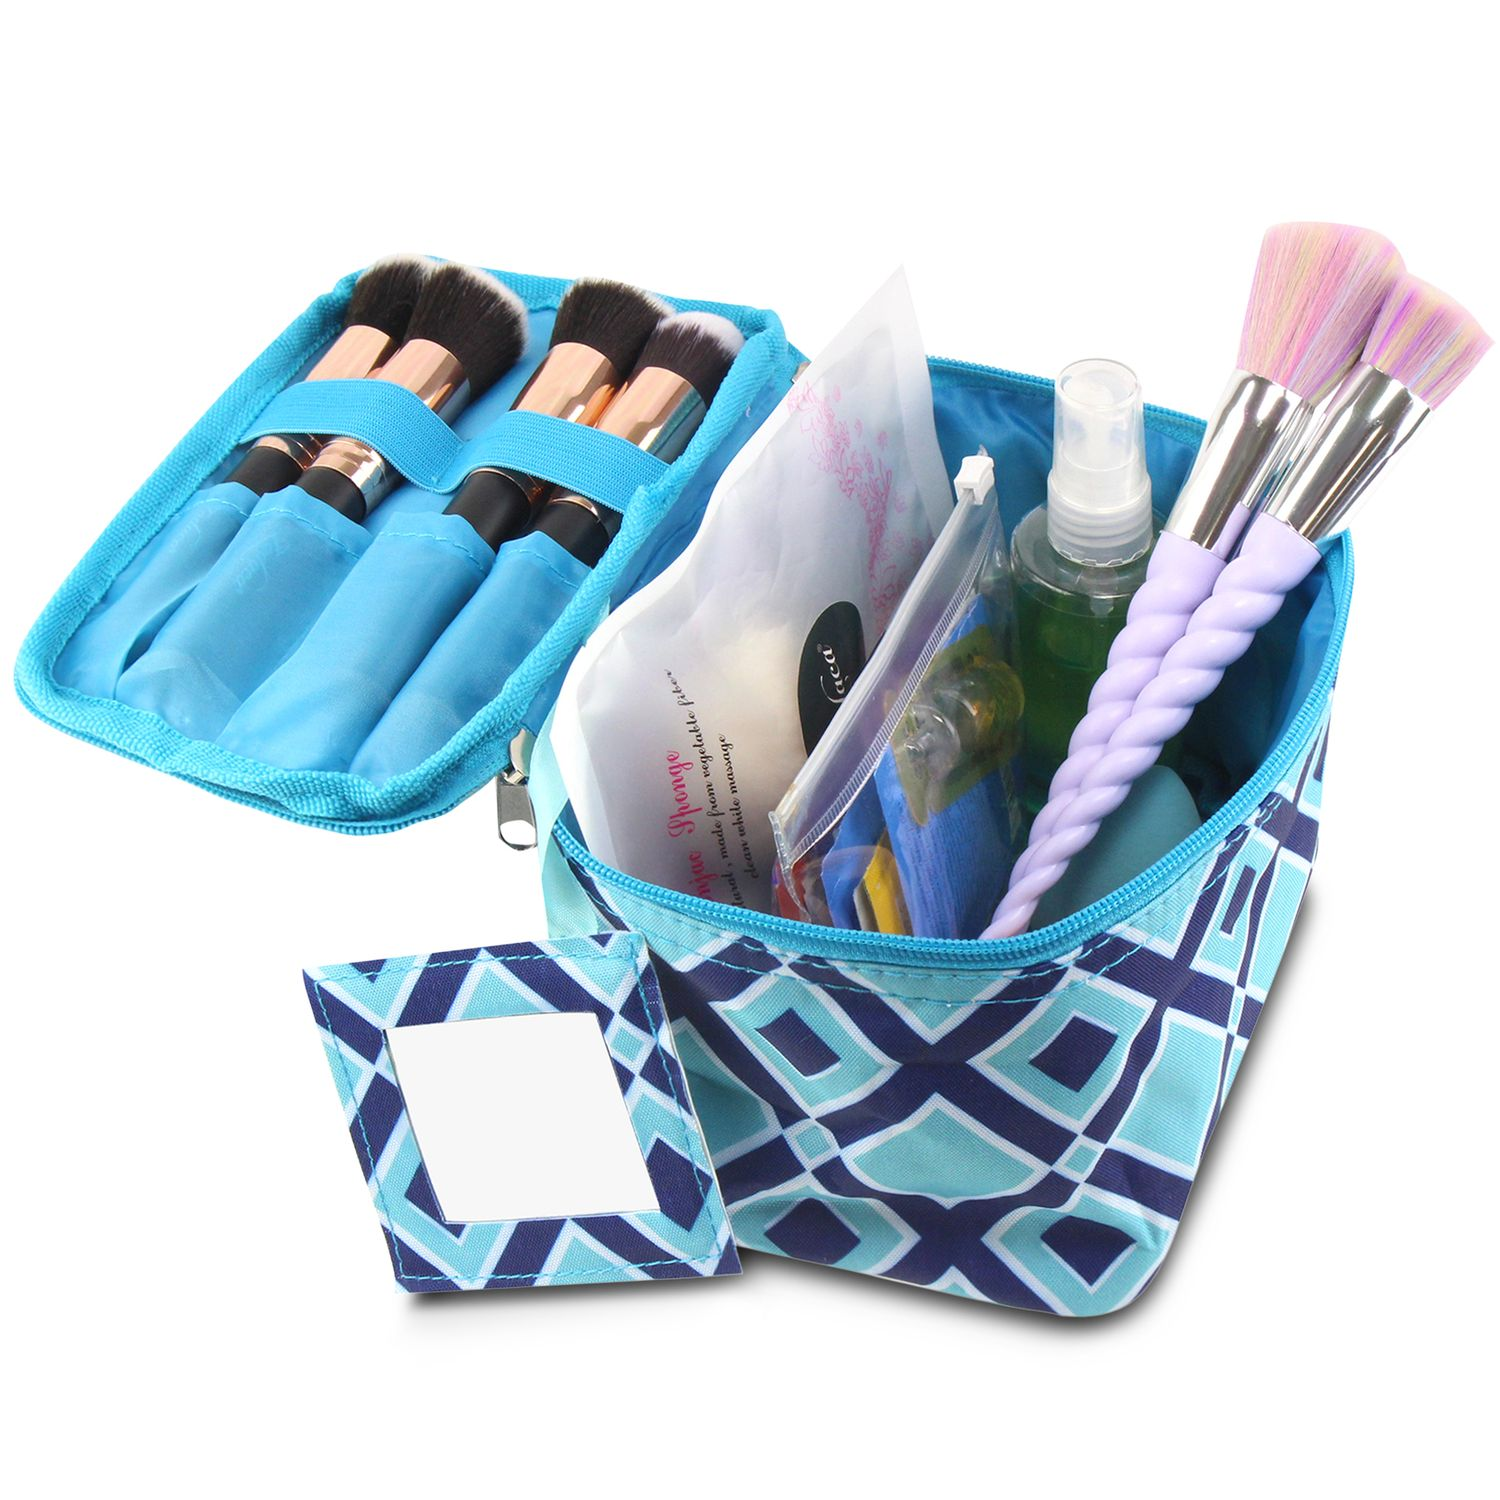 Small Cosmetic Makeup Carry Bag with Mirror by Zodaca Compact Toiletry Organizer for Business Trip Travel Camping Hiking - Blue Times Square